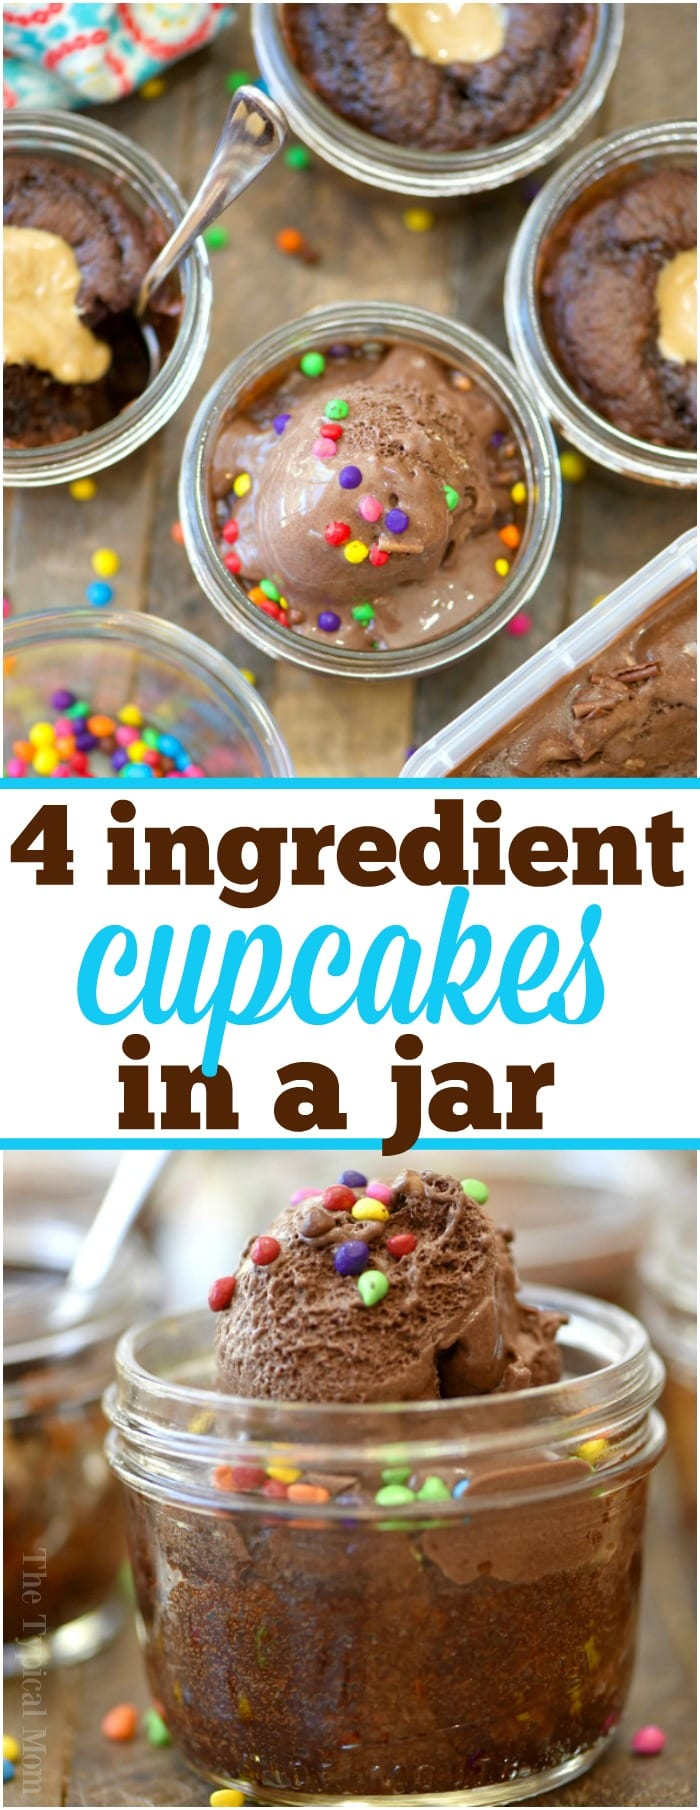 Cupcakes In A Jar 183 The Typical Mom